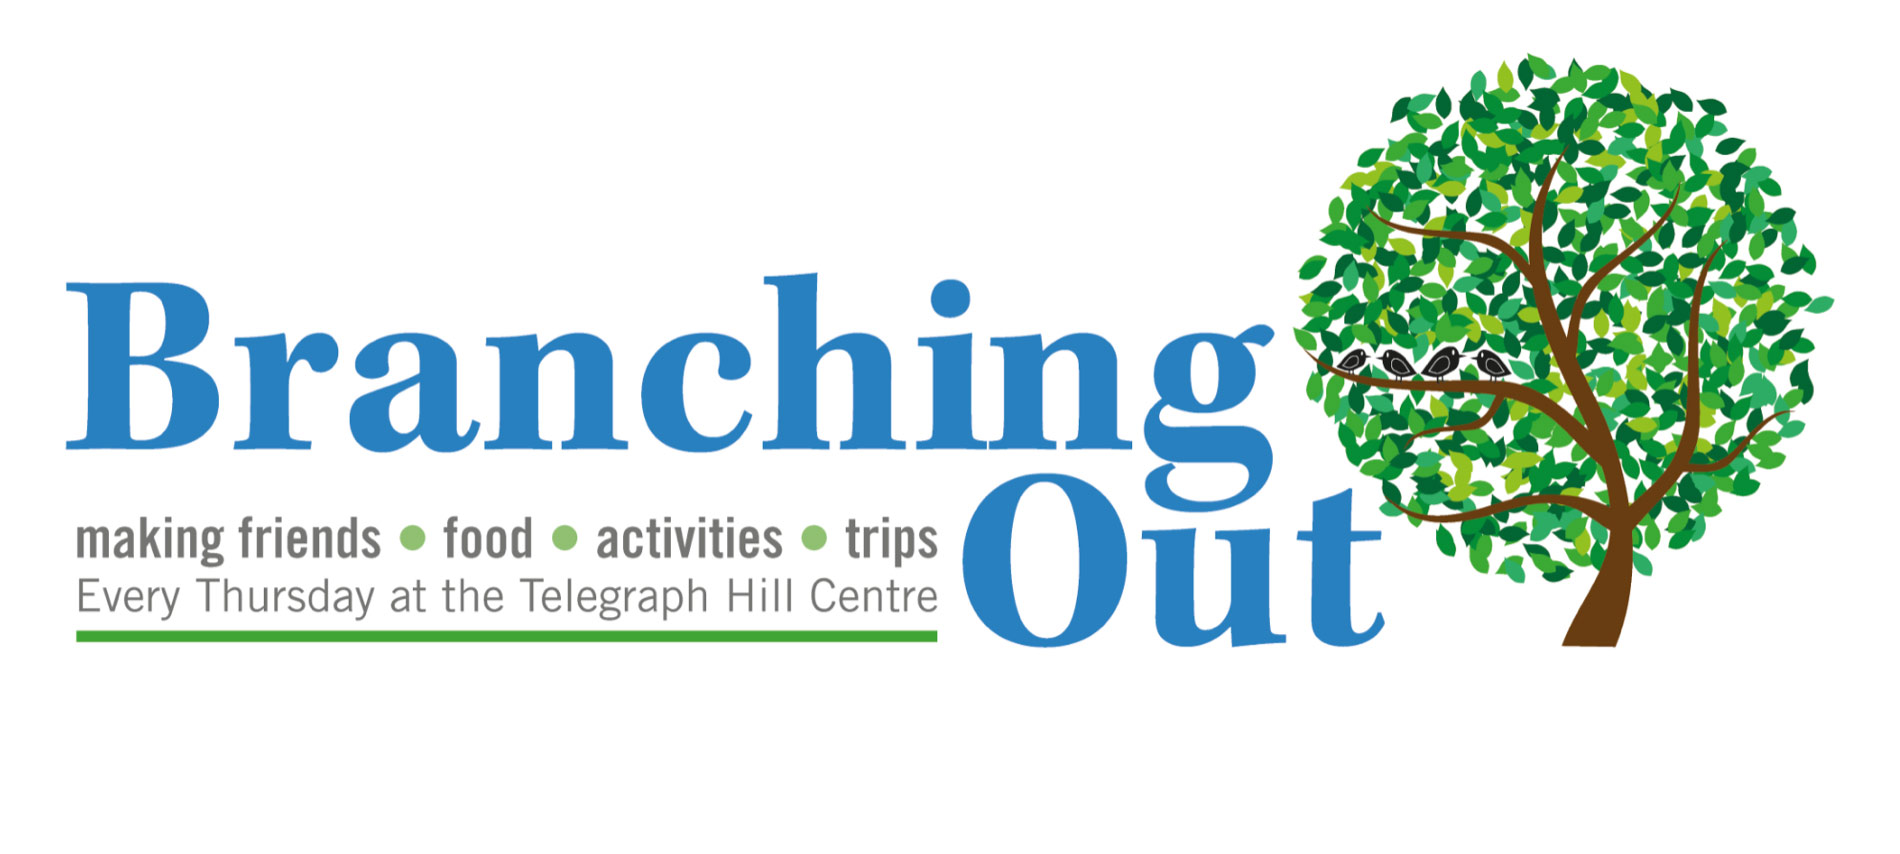 New Branching Out Activities